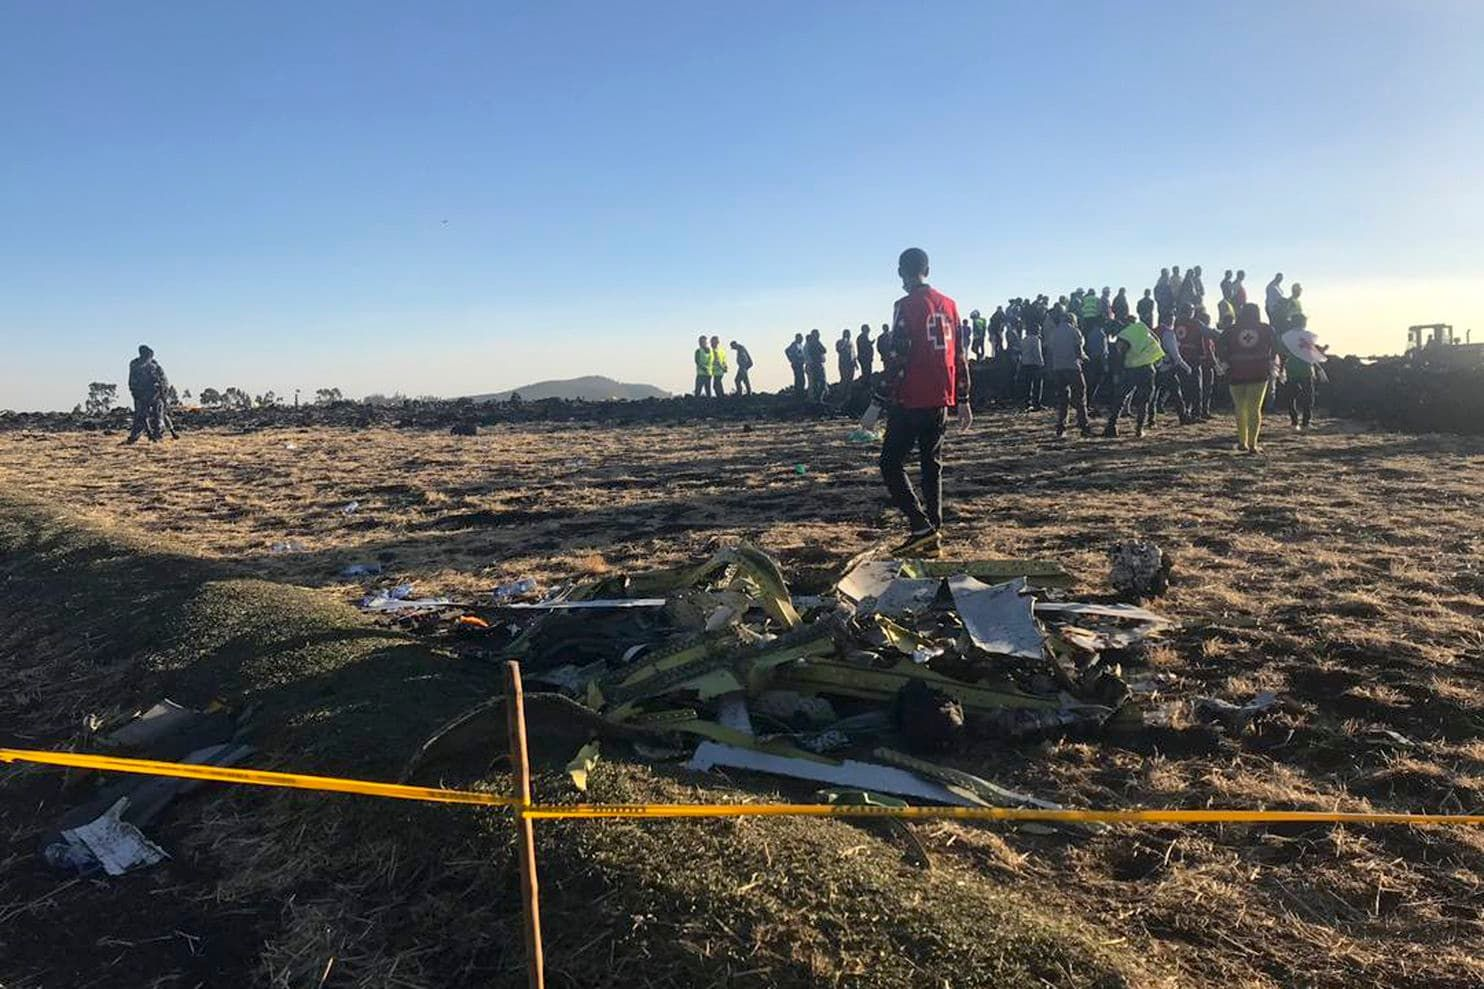 It was the second crash of the 737 MAX the latest version of Boeing's workhorse narrow body jet that first entered service in 2017